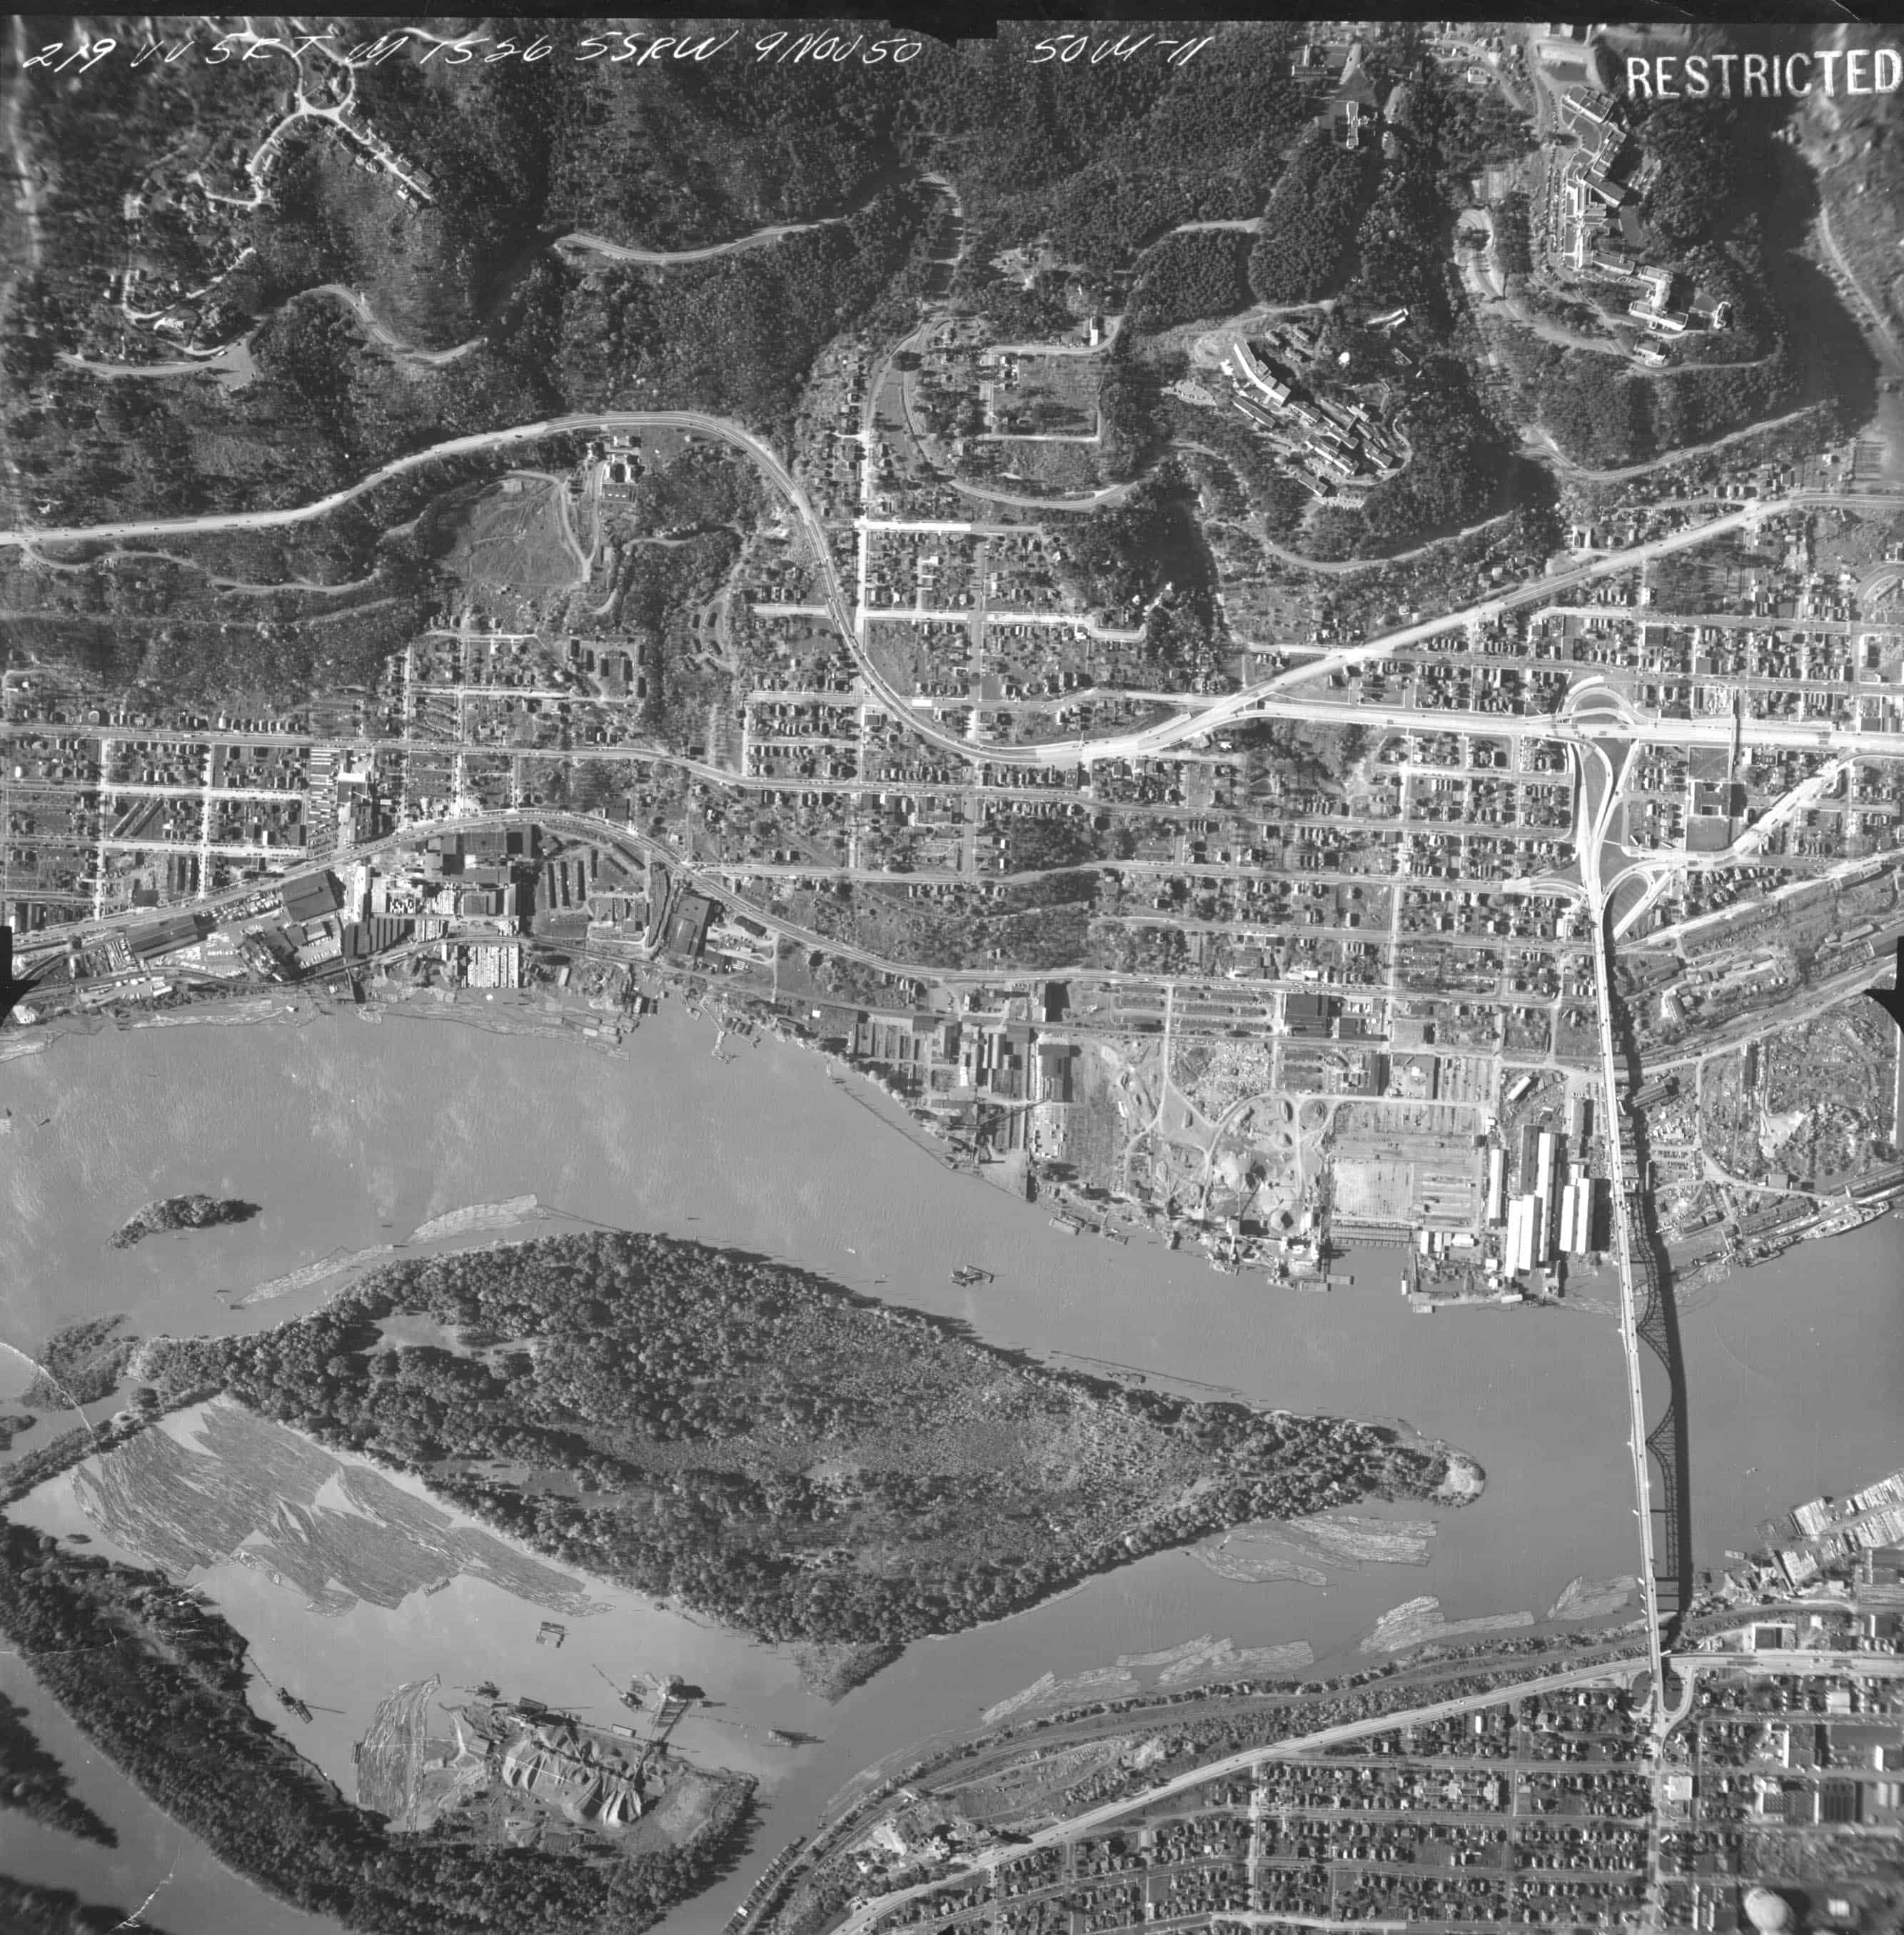 Aerial over Willamette and Ross Island in 1950